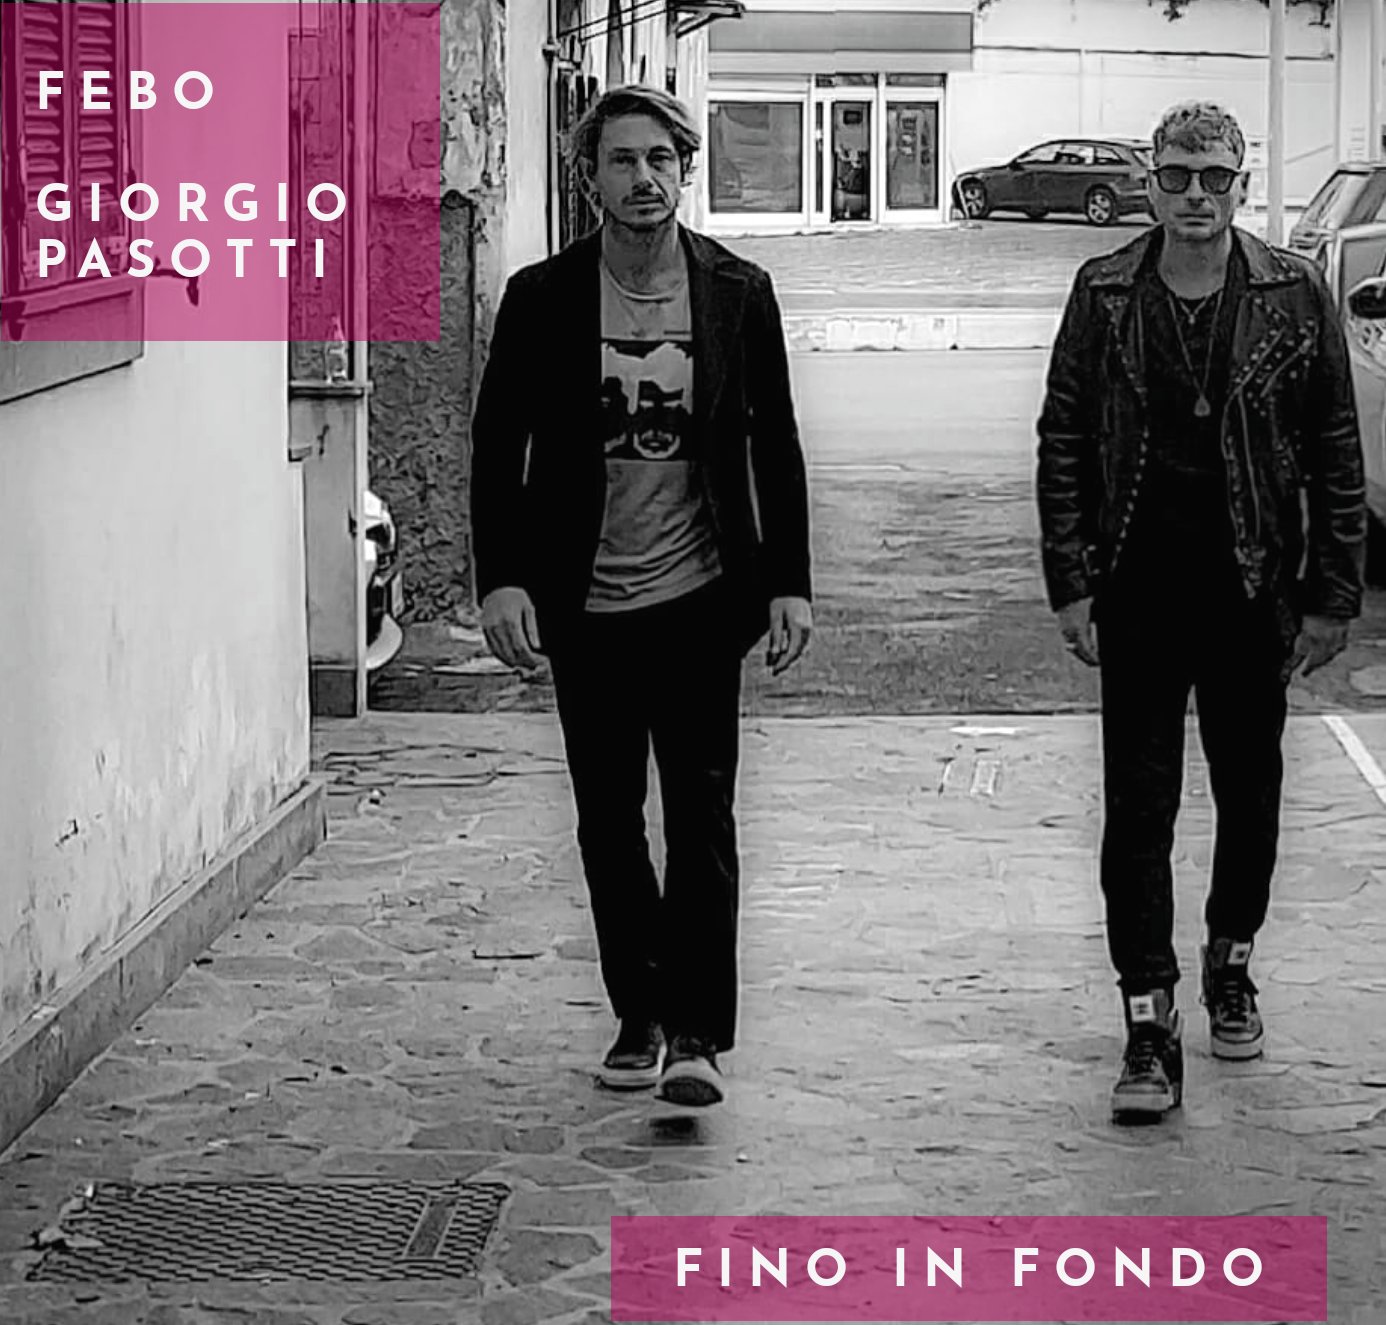 Febo feat. Giorgio Pasotti il singolo Fino in Fondo   disponibile in digital download e in radio